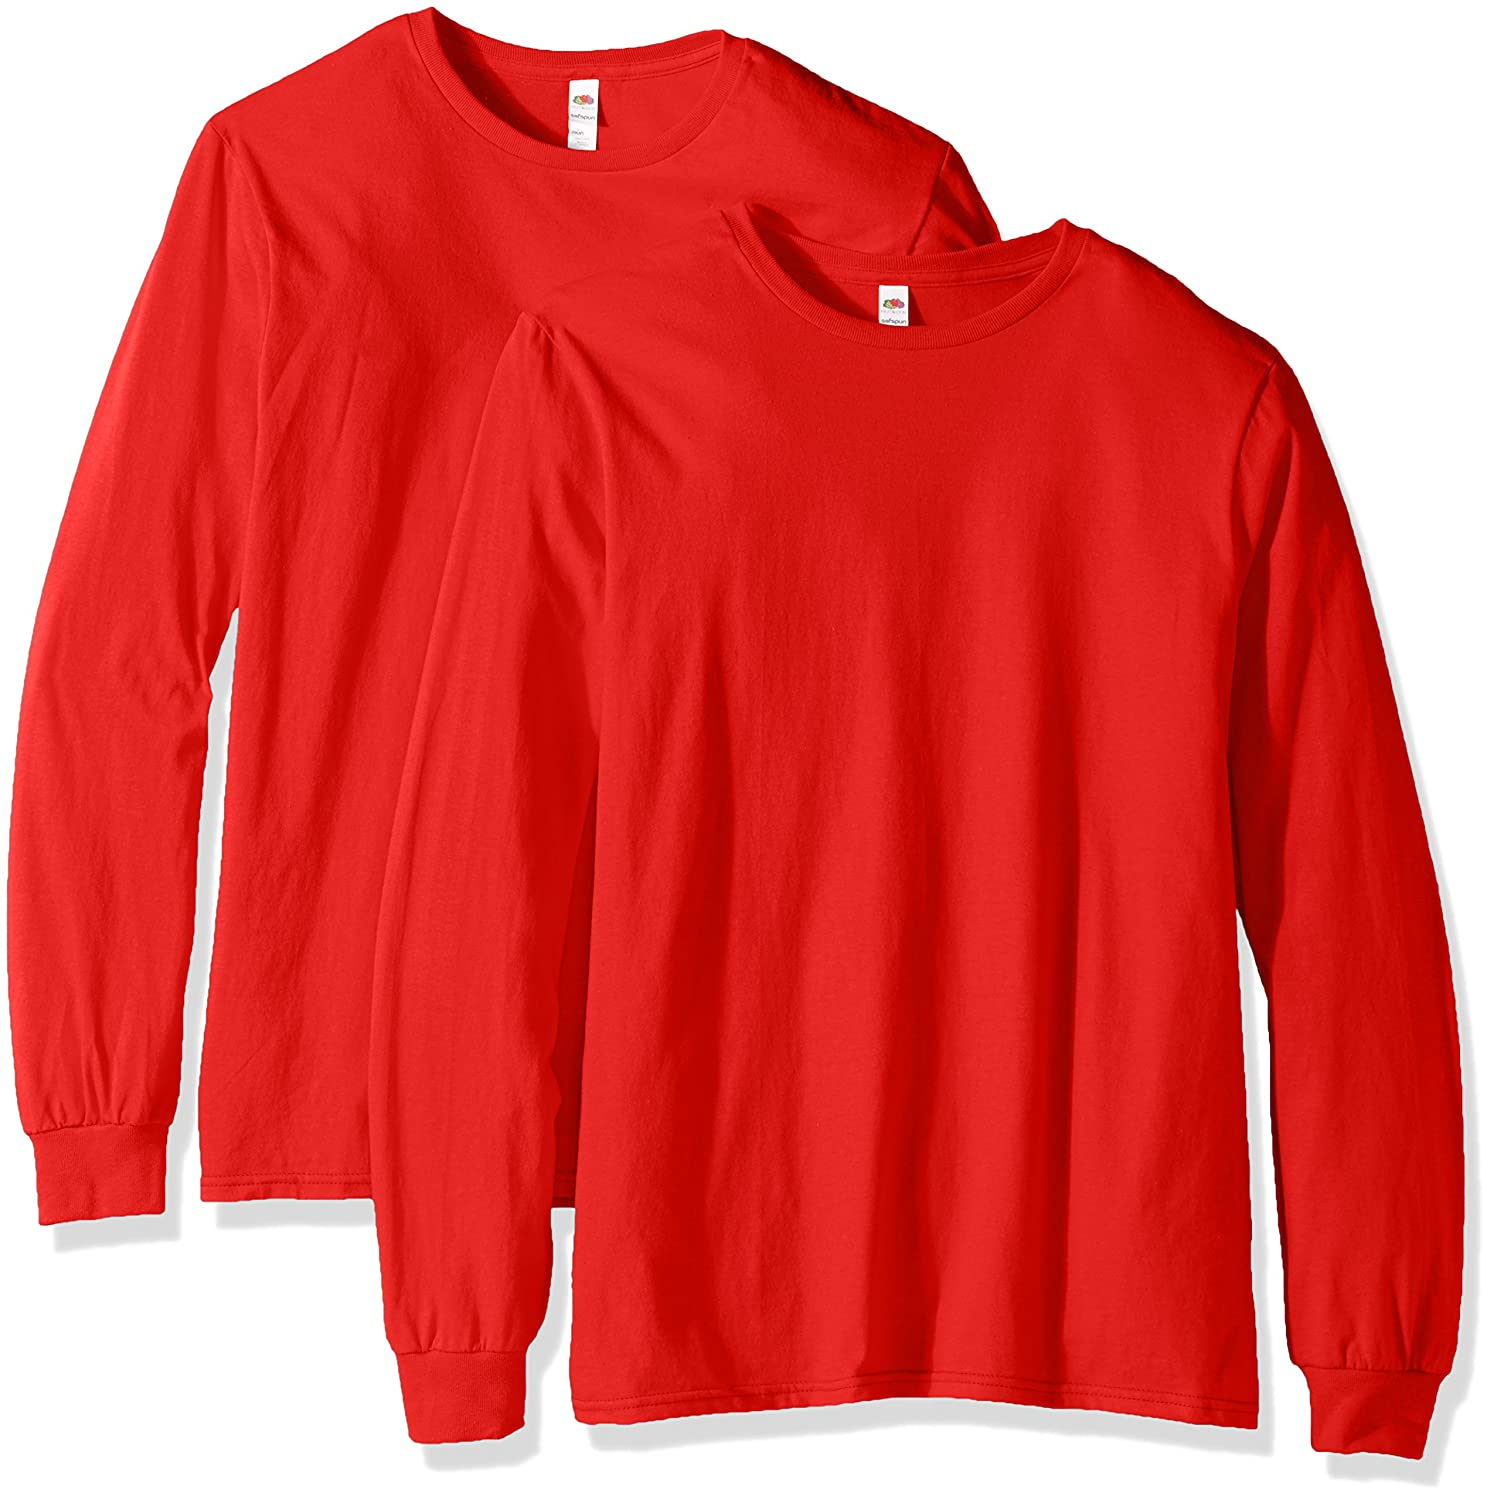 Fruit of the Loom Mens Long Sleeve T-Shirt (2 Pack) SFLR